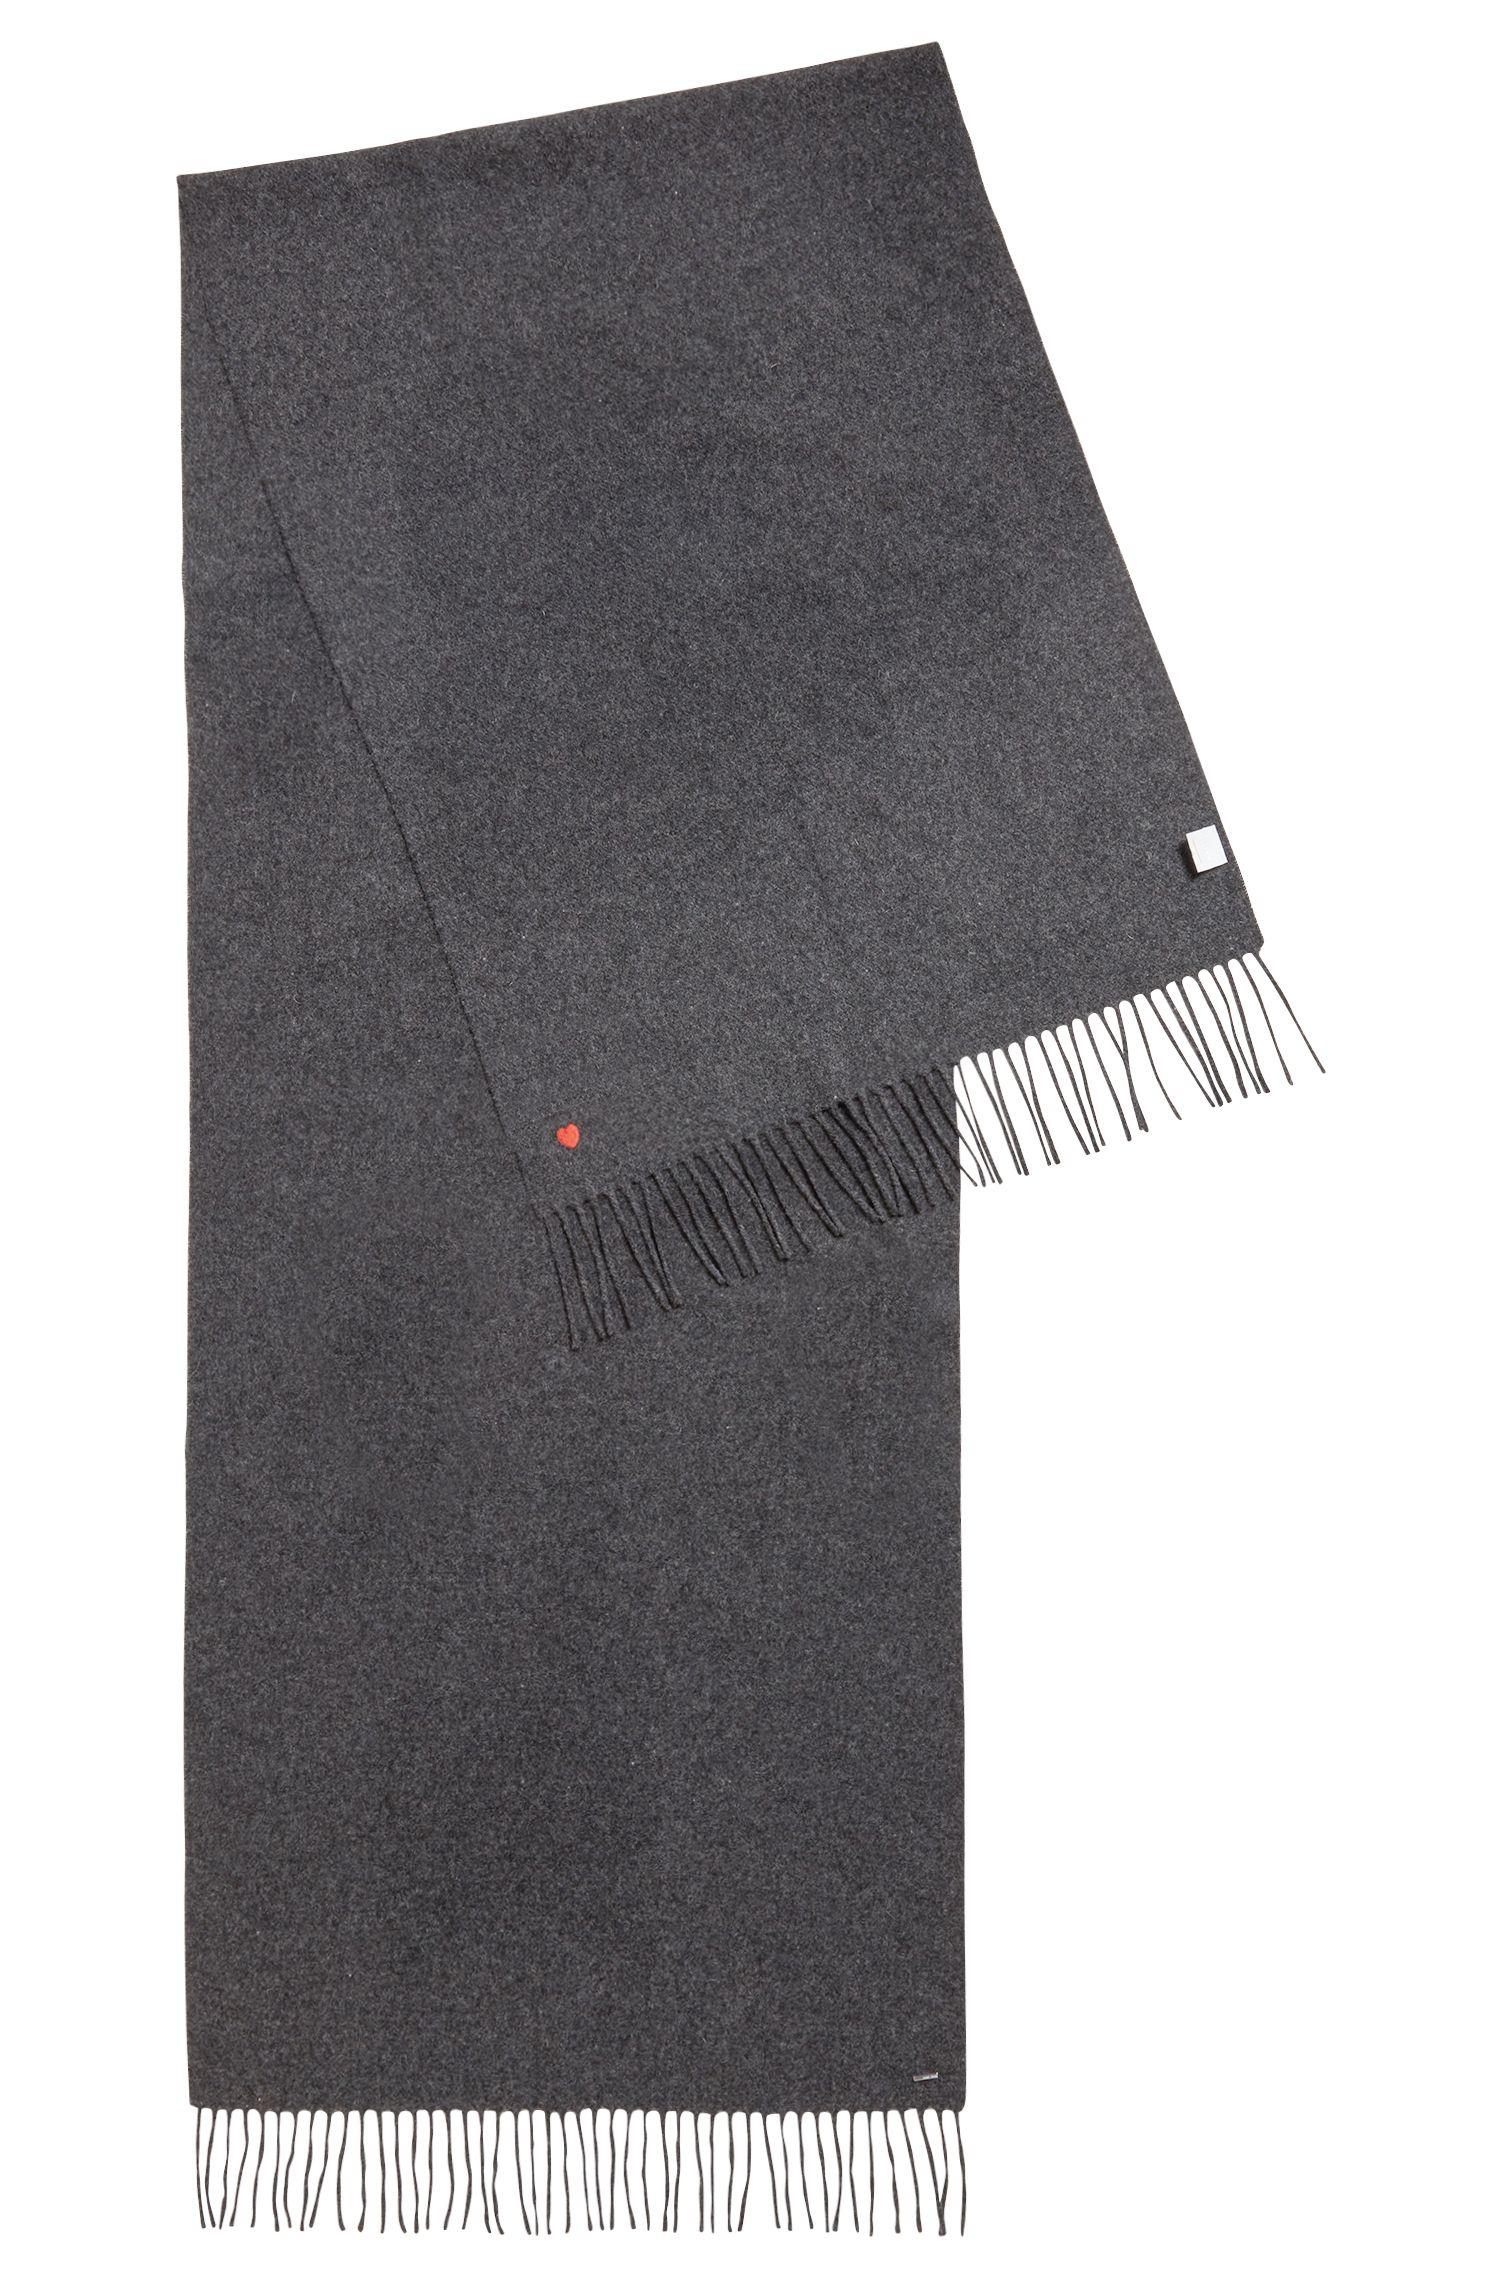 Fringed scarf in woven wool with contrast embroidered heart